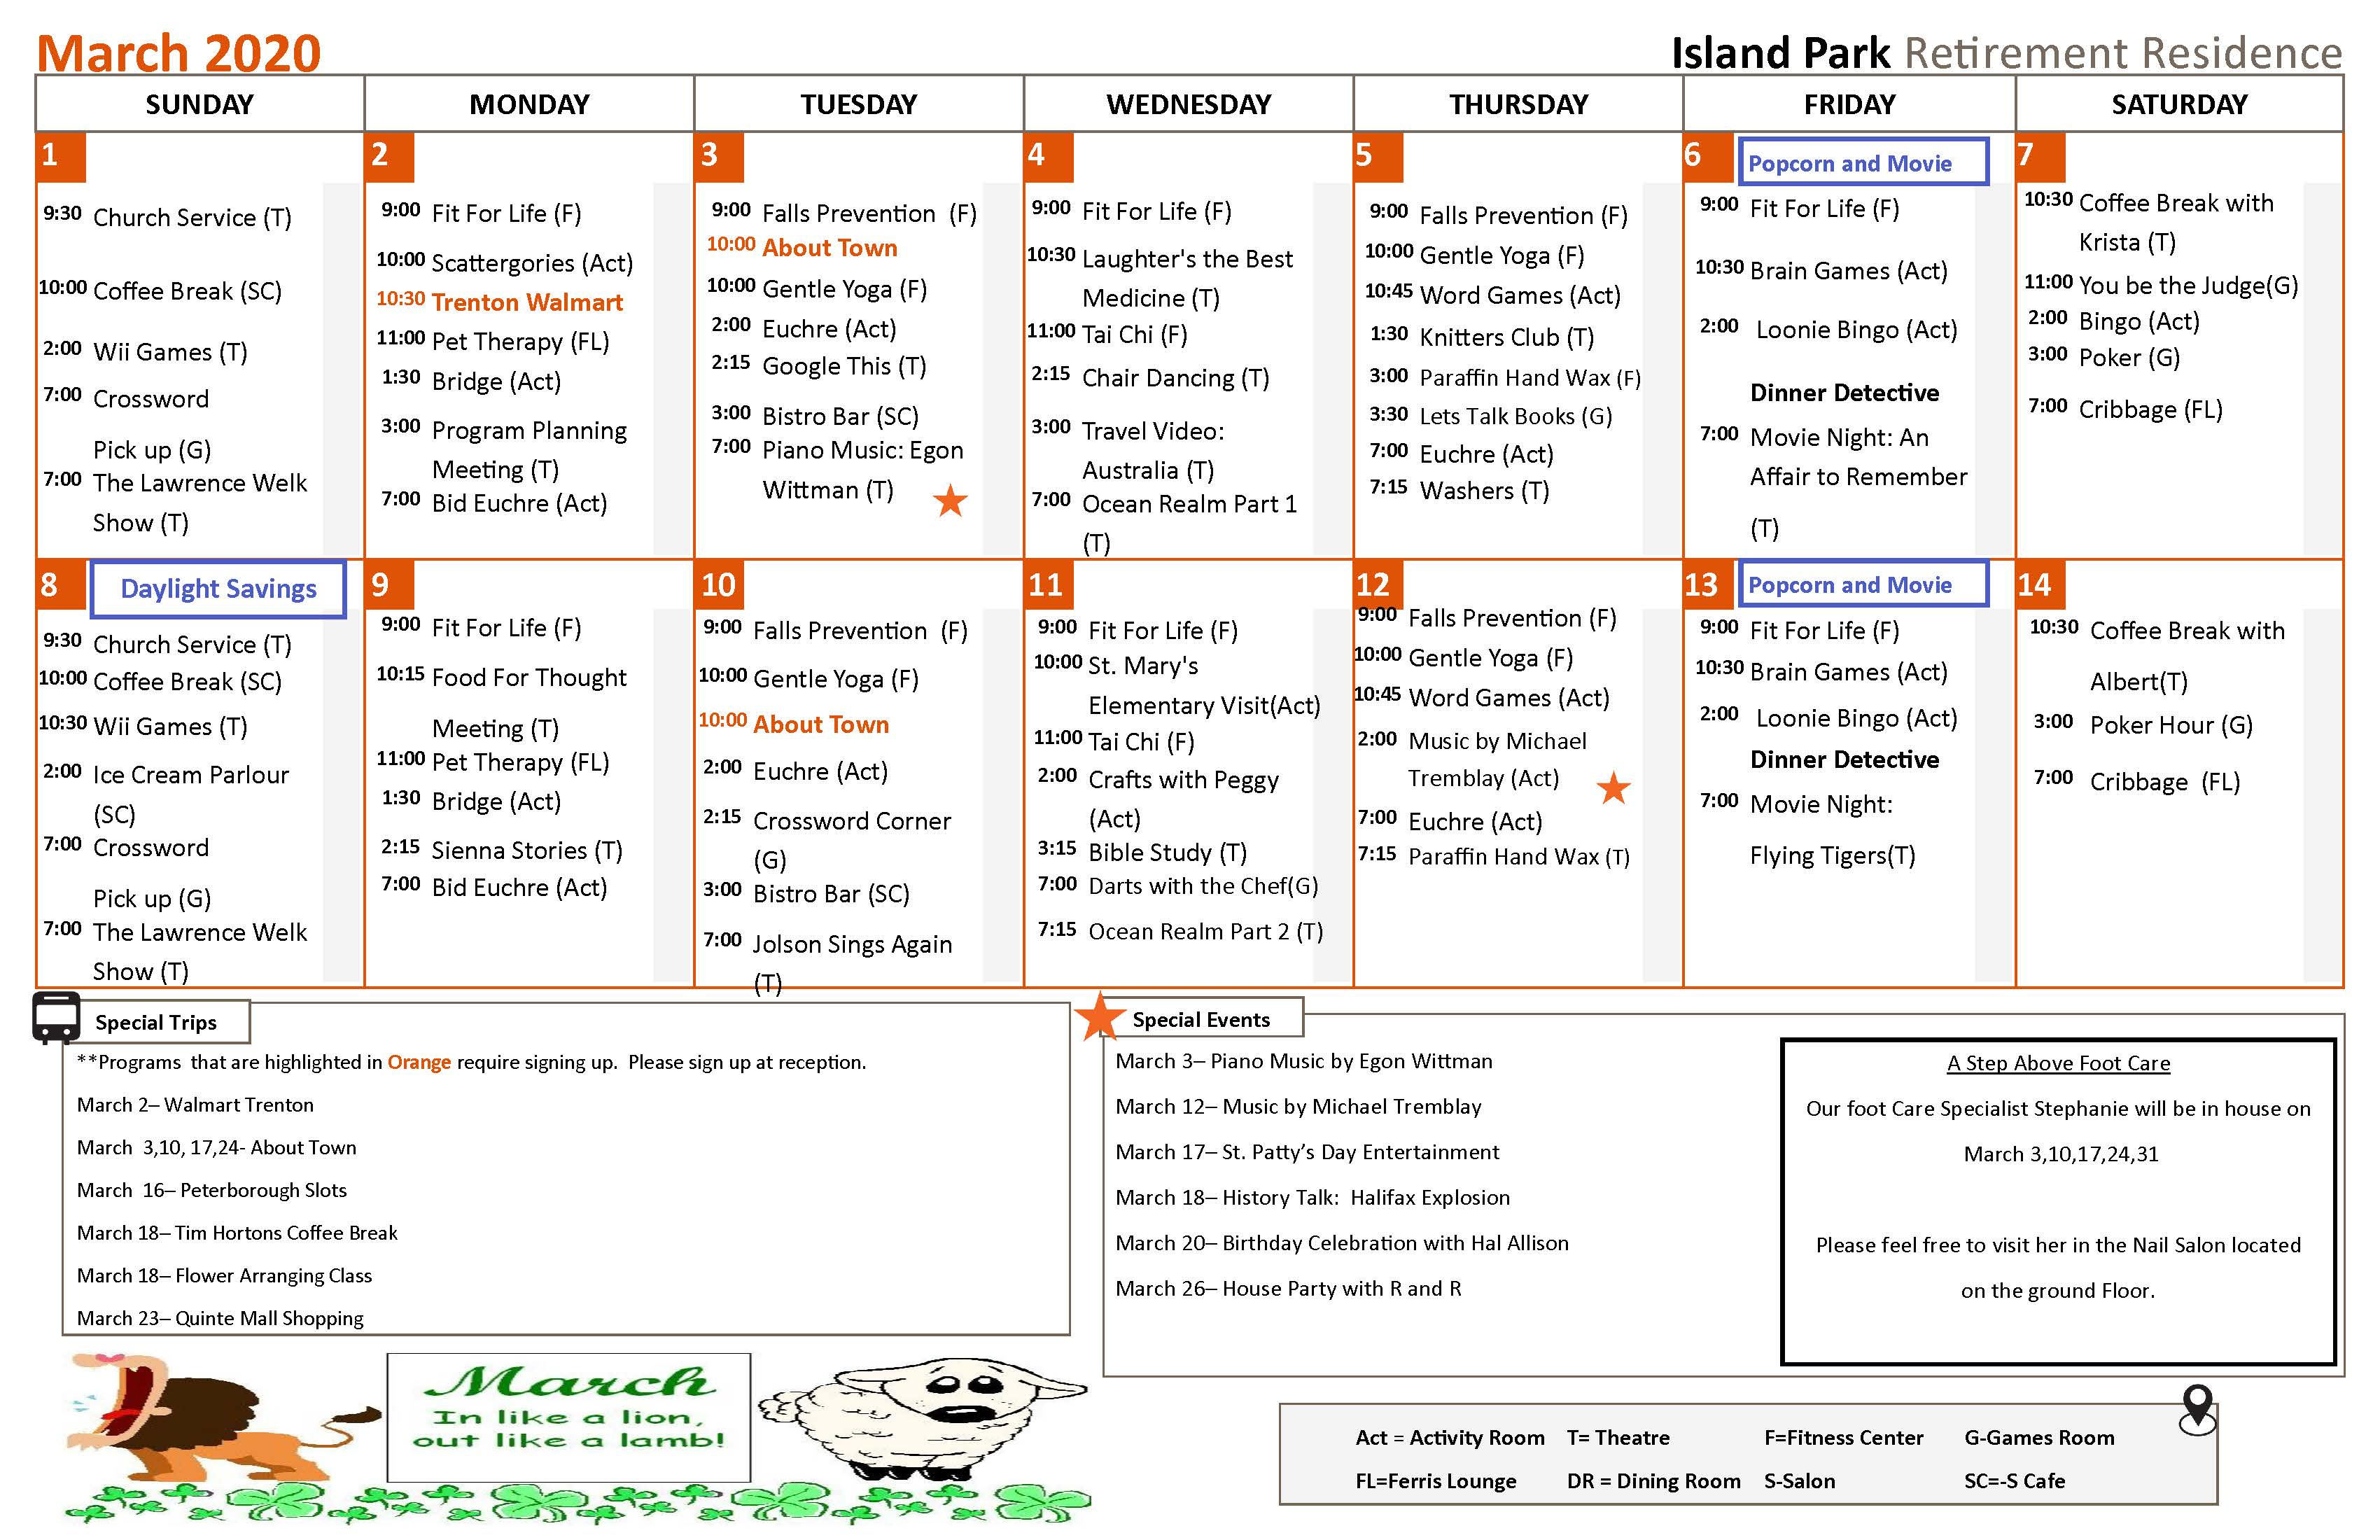 This is an image showing our monthly calendar of activities. If you have a question about our daily activities on a certain day, or about one of our programs, kindly give us a call at 705-653-3100. We would be happy to assist you in any way we can.